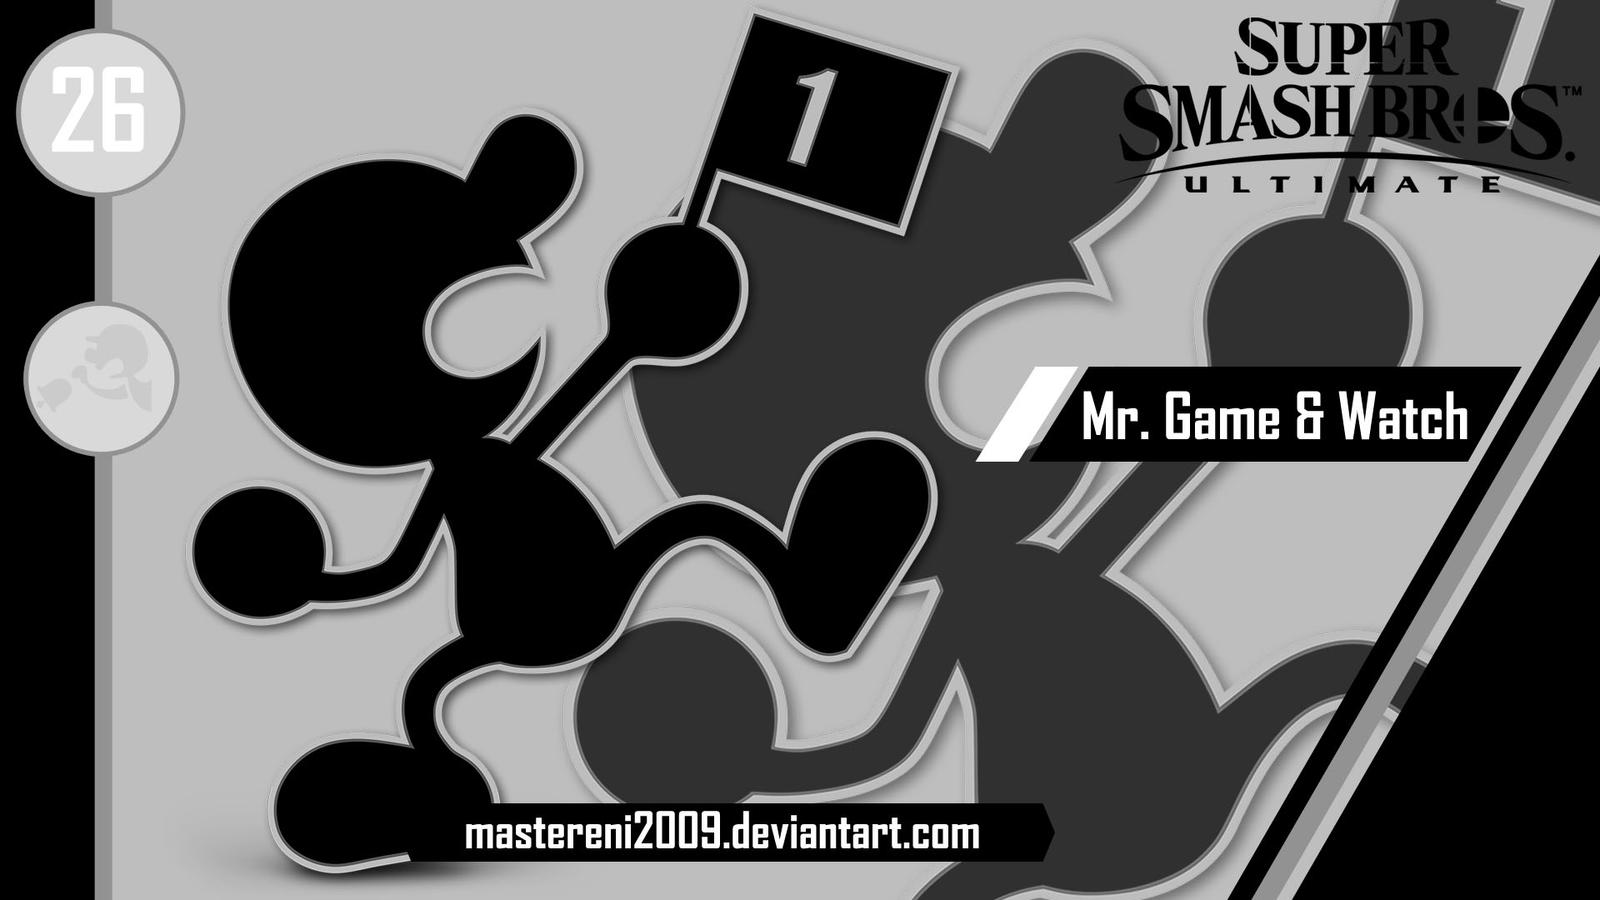 Ssbu Custom Wallpaper 26 Mr Game And Watch By Mastereni2009 On